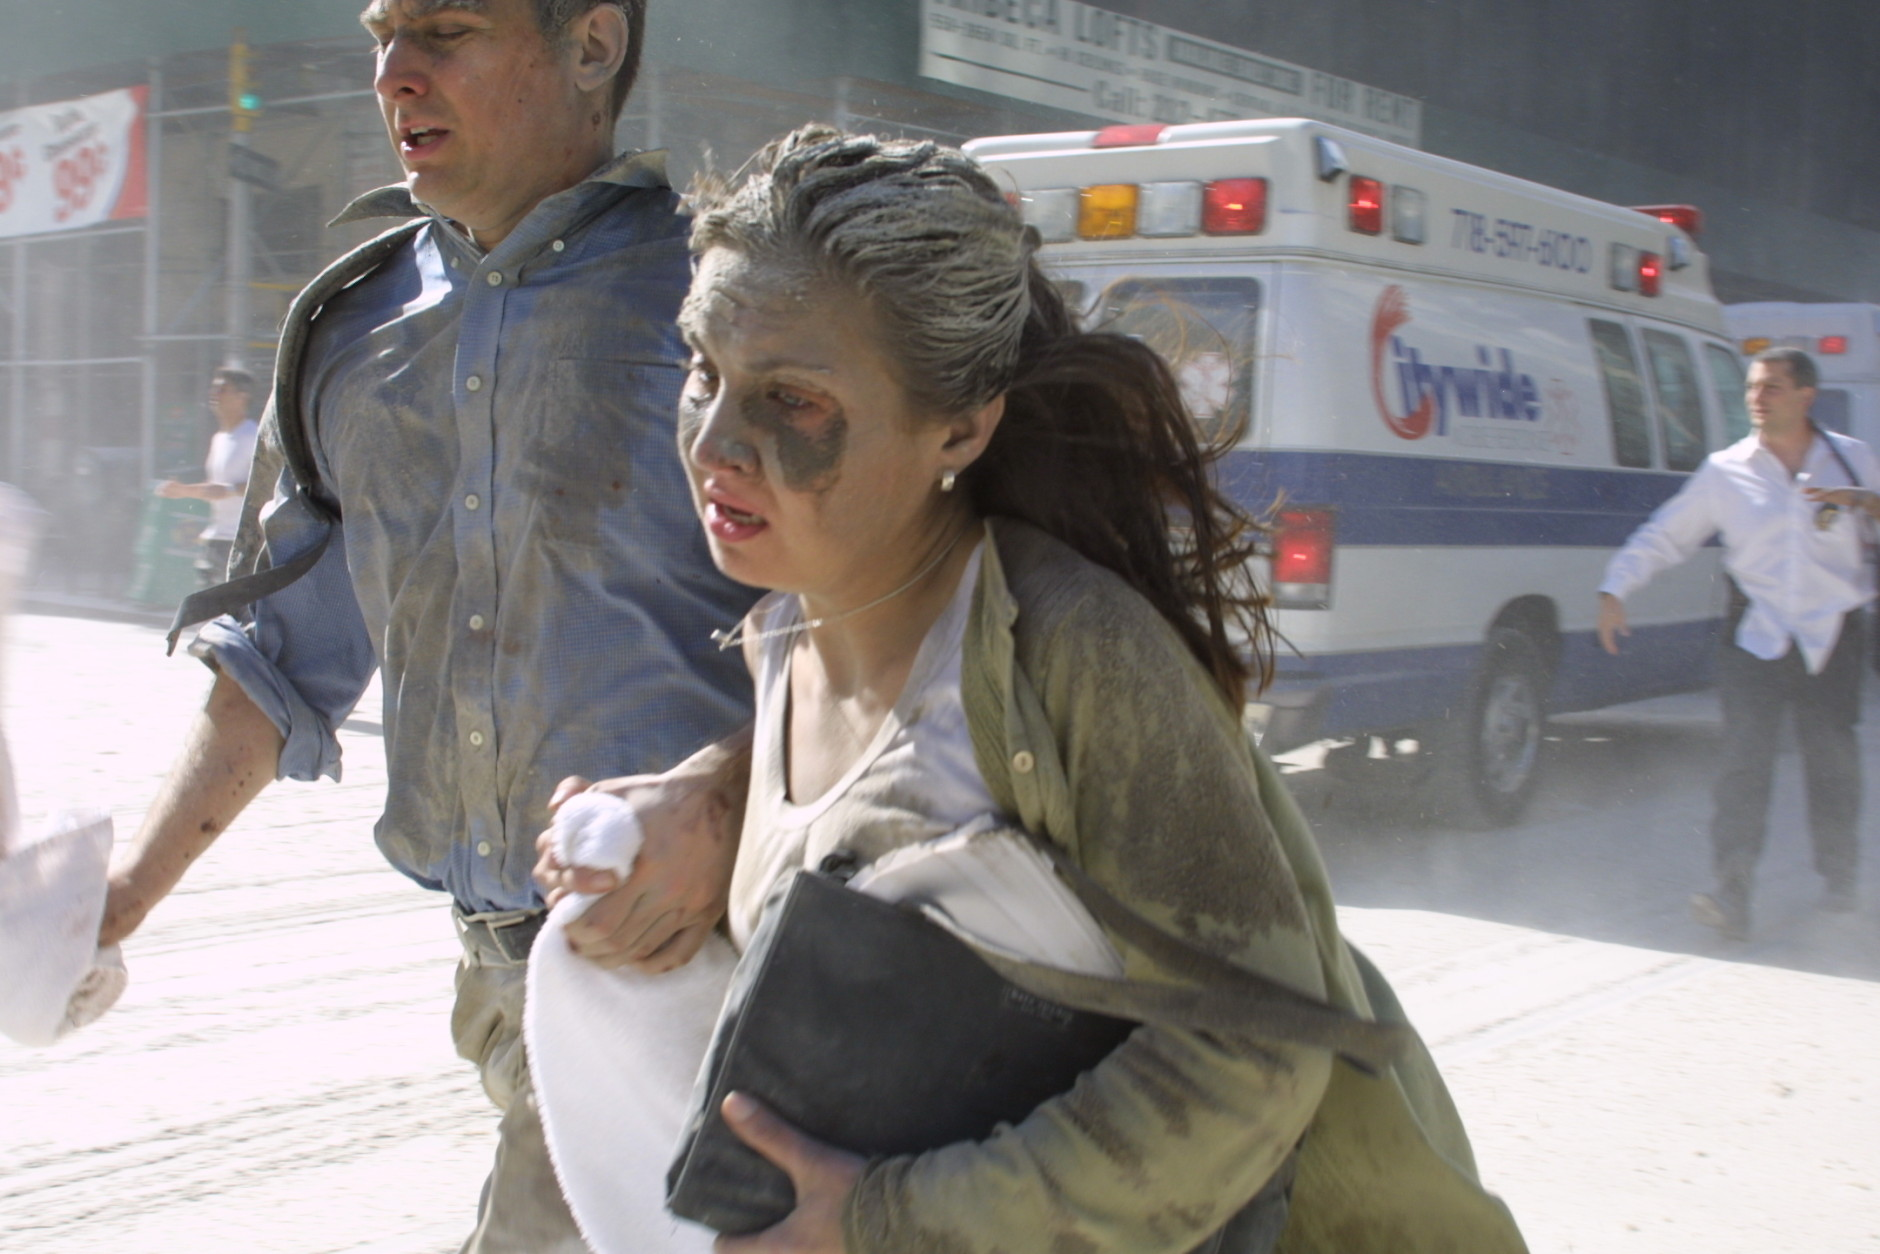 People flee the scene near New York's World Trade Center after terrorists crashed two planes into the towers on Tuesday, September 11, 2001. In a horrific sequence of destruction, terrorists hijacked two airliners and crashed them into the World Trade Center in a coordinated series of attacks that brought down the twin 110-story towers. (AP Photo/Diane Bondareff)